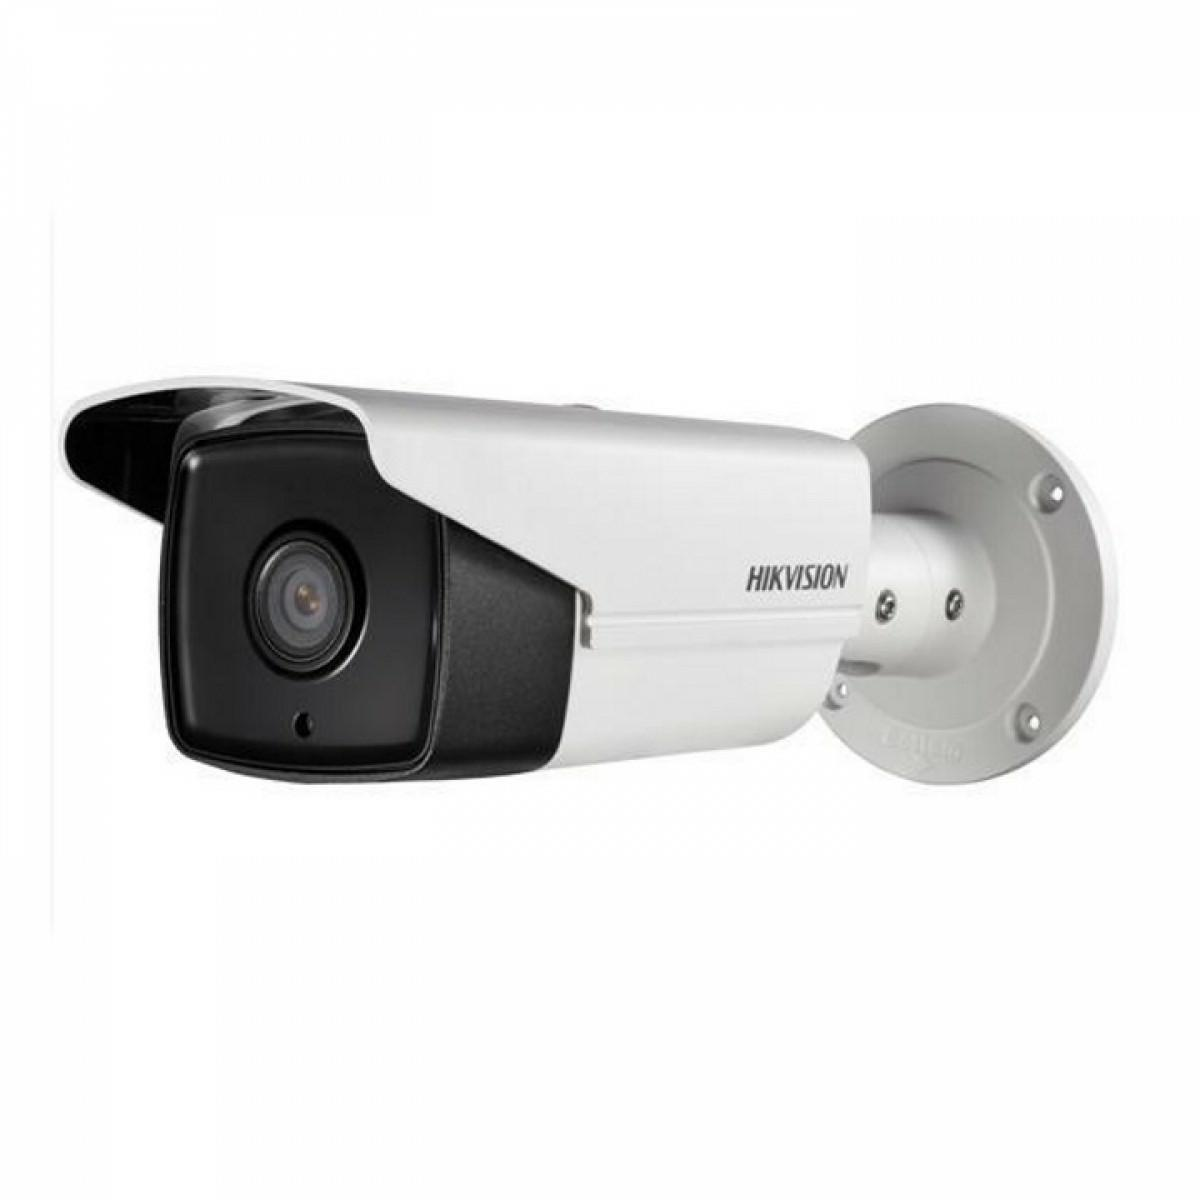 SICE Distributore Ufficiale  TELECAMERE IP TLC Bullet IP camera 4Mpx 12mm 1/3 CMOS IR 50m WDR | DS-2CD2T42WDI512